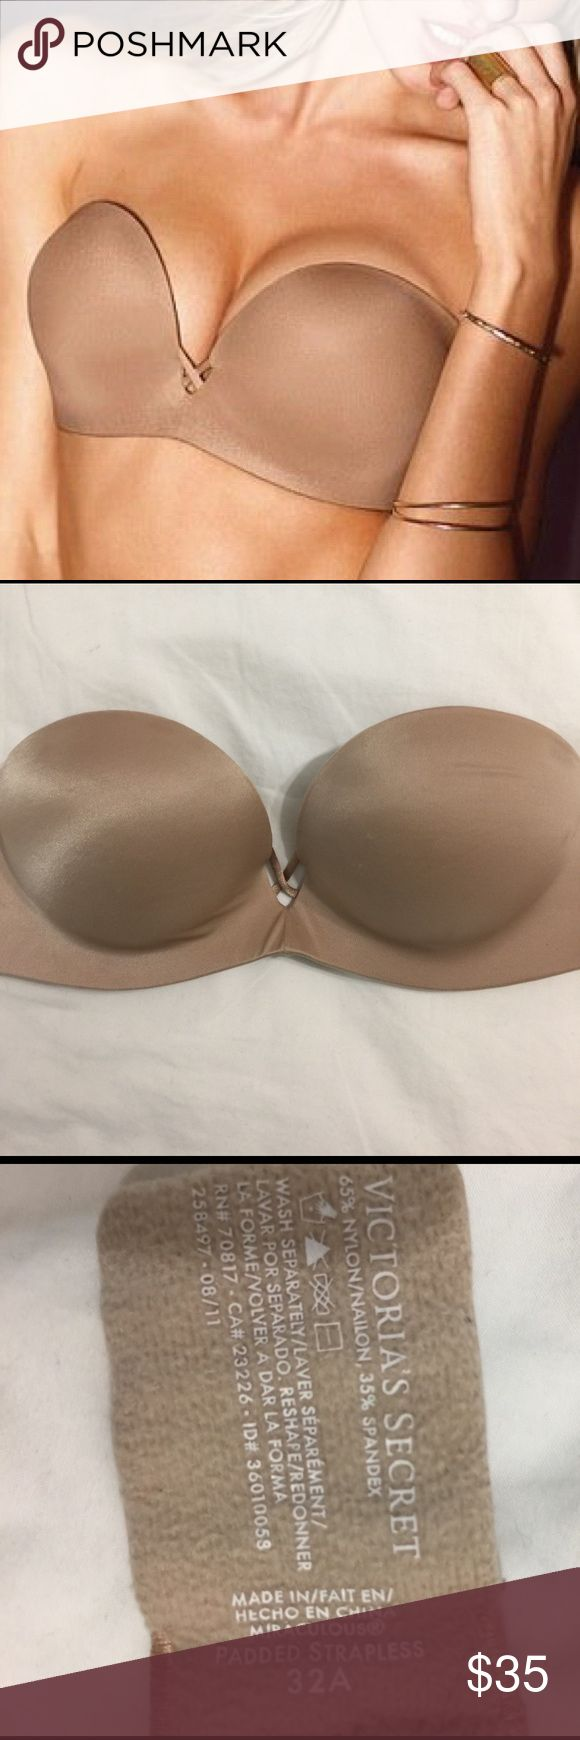 Victoria Secret Bombshell Push-Up Bra This Victoria Secret bombshell push-up bra promises to add two cups to your regular breast size. It has great support, does not slip and was used very very few times! Victoria's Secret Intimates & Sleepwear Bras